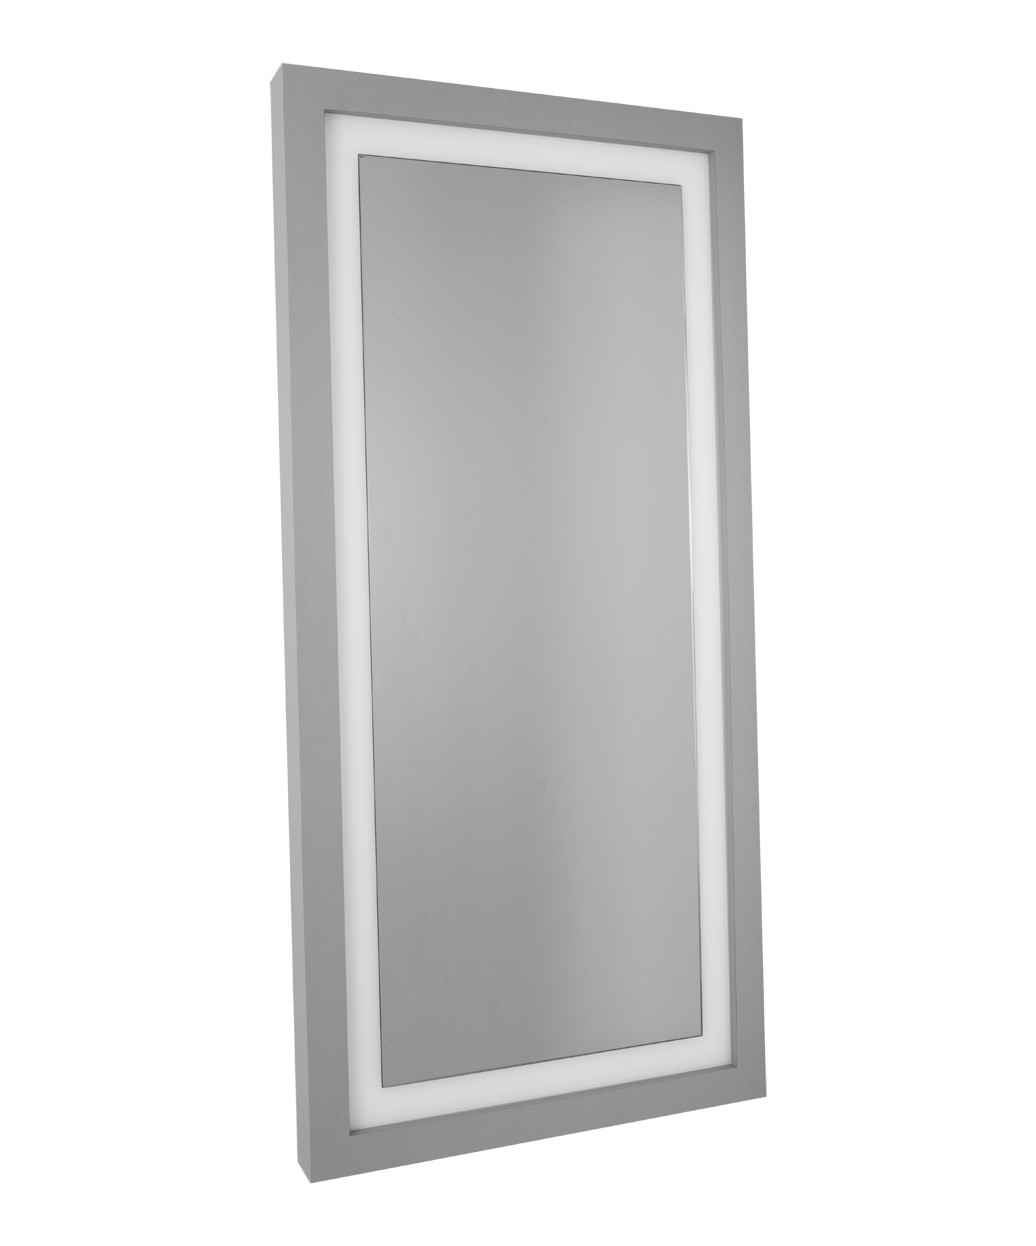 galaxy mirror styling station w led lights. Black Bedroom Furniture Sets. Home Design Ideas